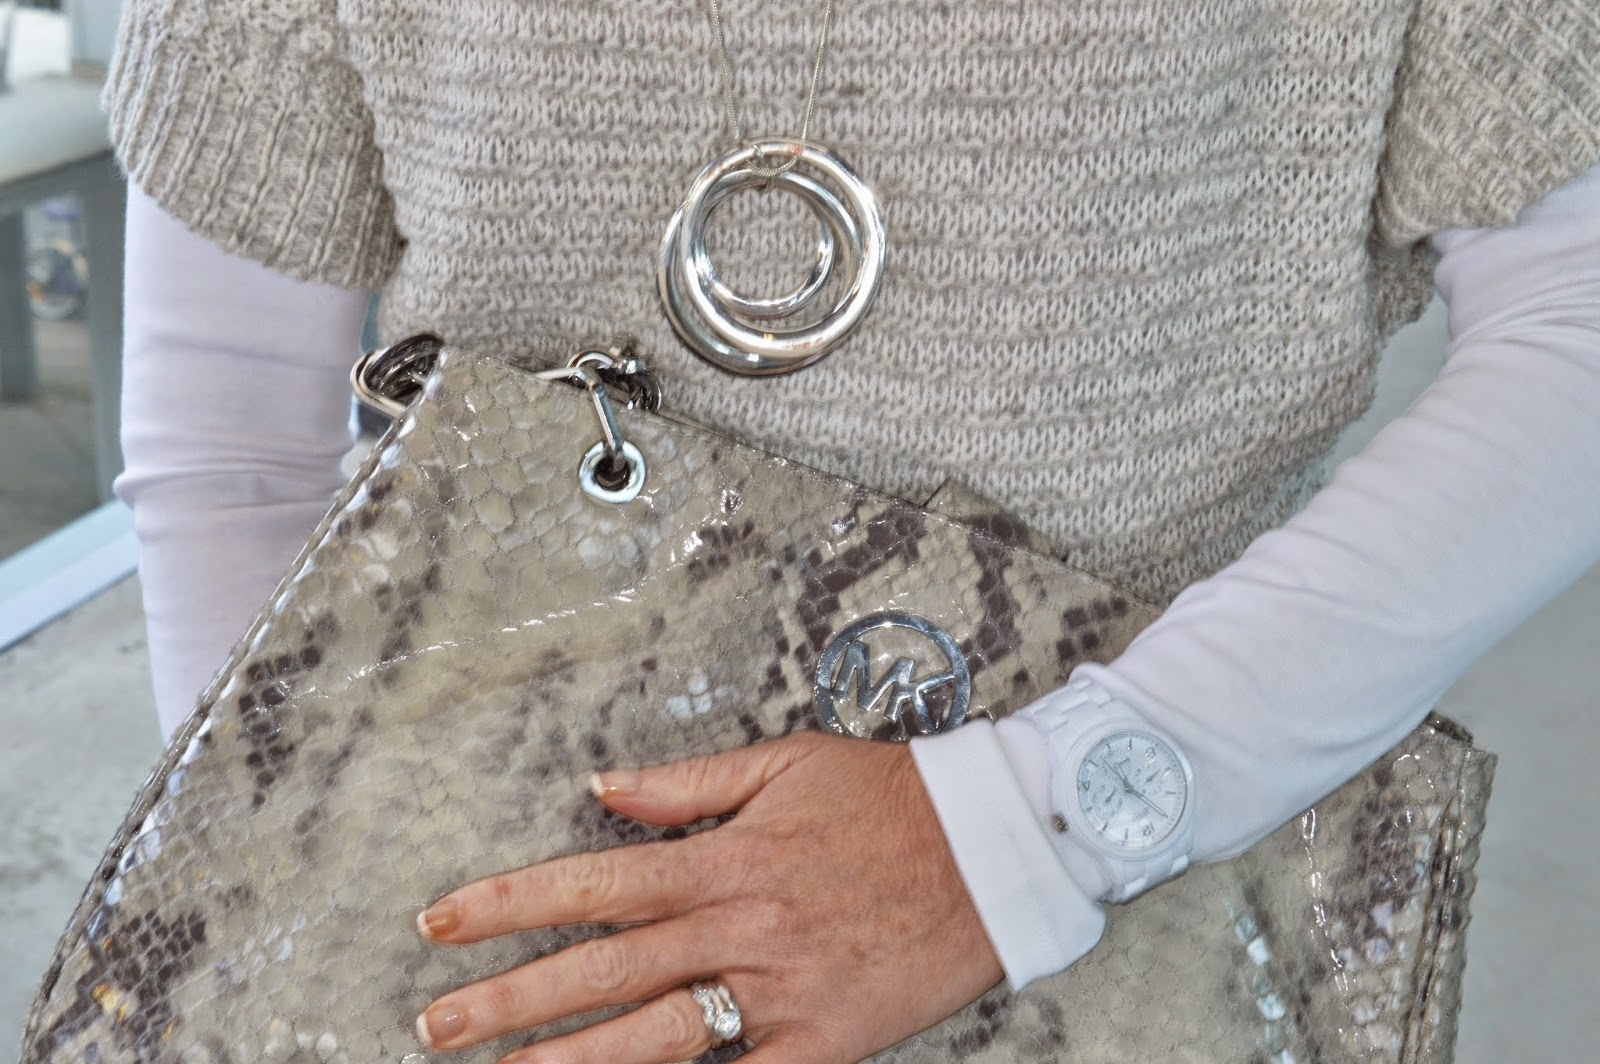 Michael Kors grey tote, Colette by Colette Hayman necklace. grey sweater, guess watch